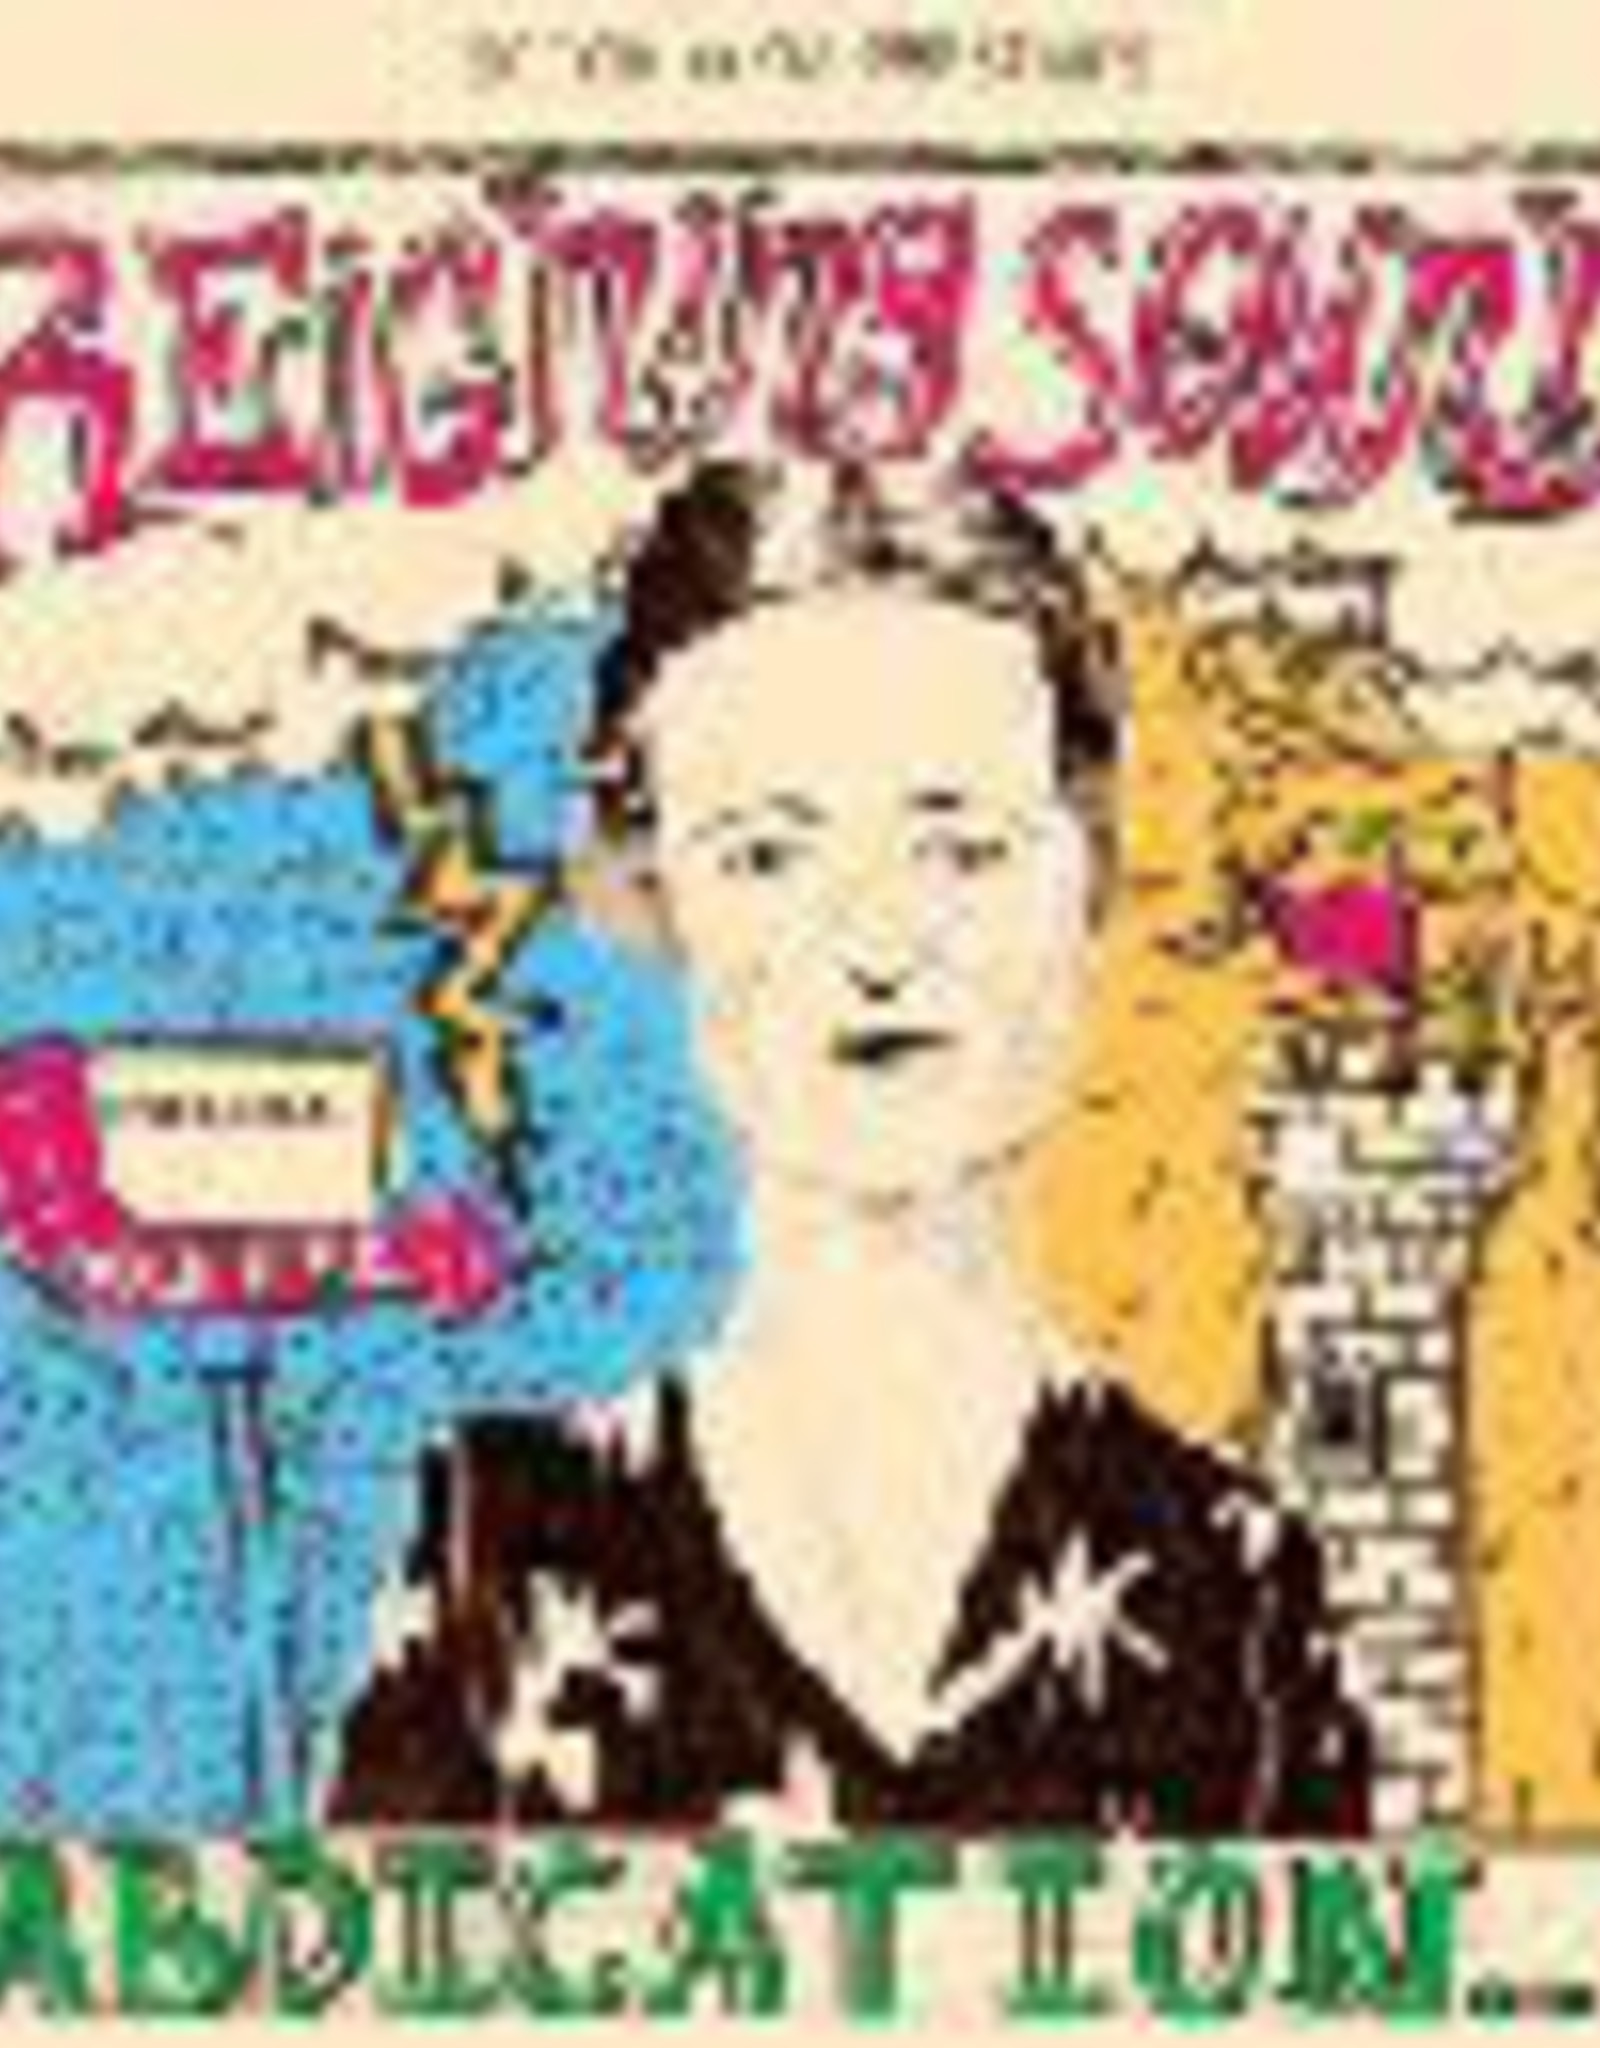 Reigning Sound - Abdication… For Your Love